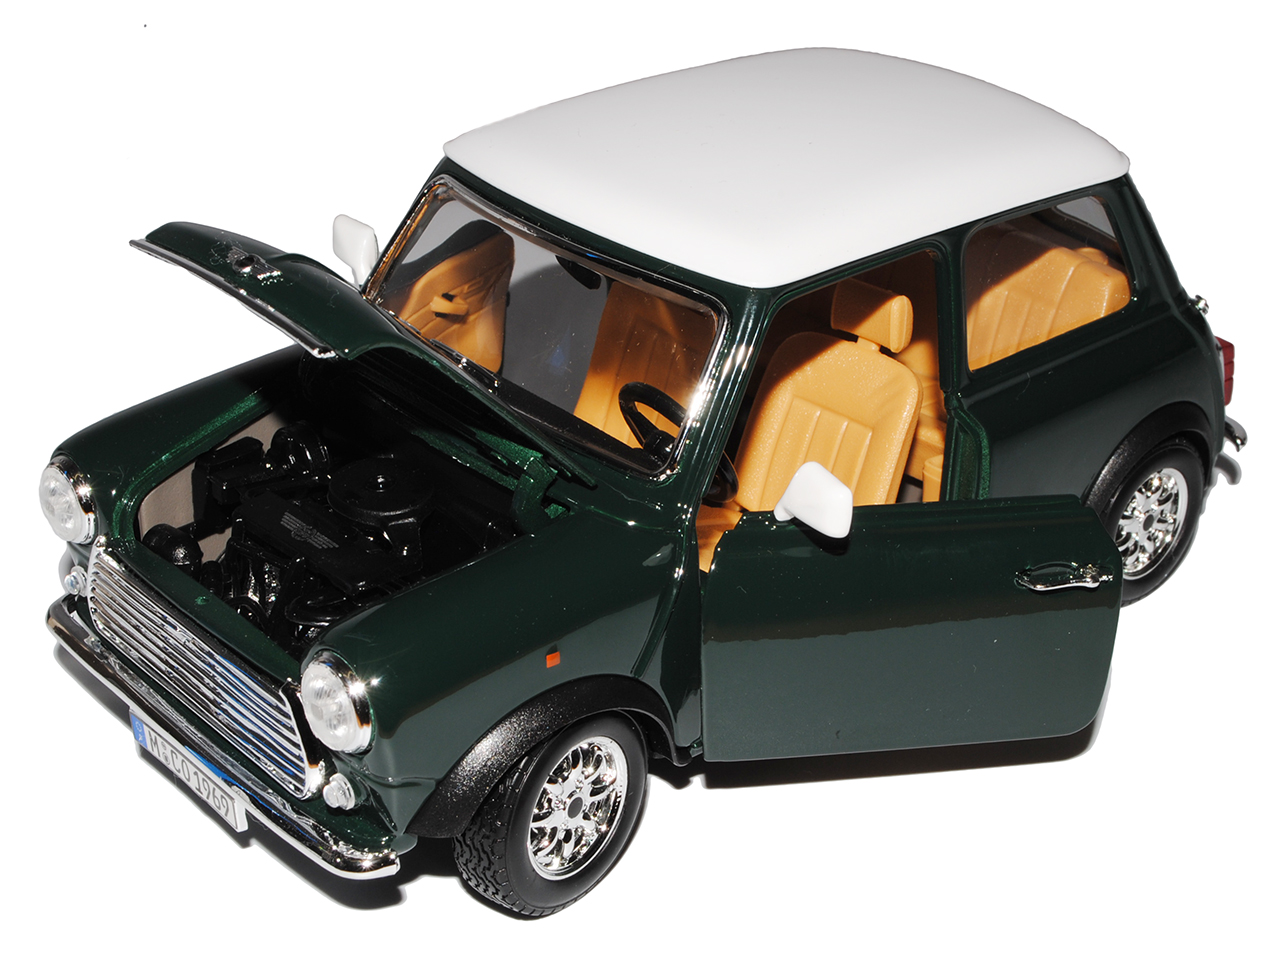 mini cooper altes ur modell gr n mit wei em dach 1959 2000. Black Bedroom Furniture Sets. Home Design Ideas